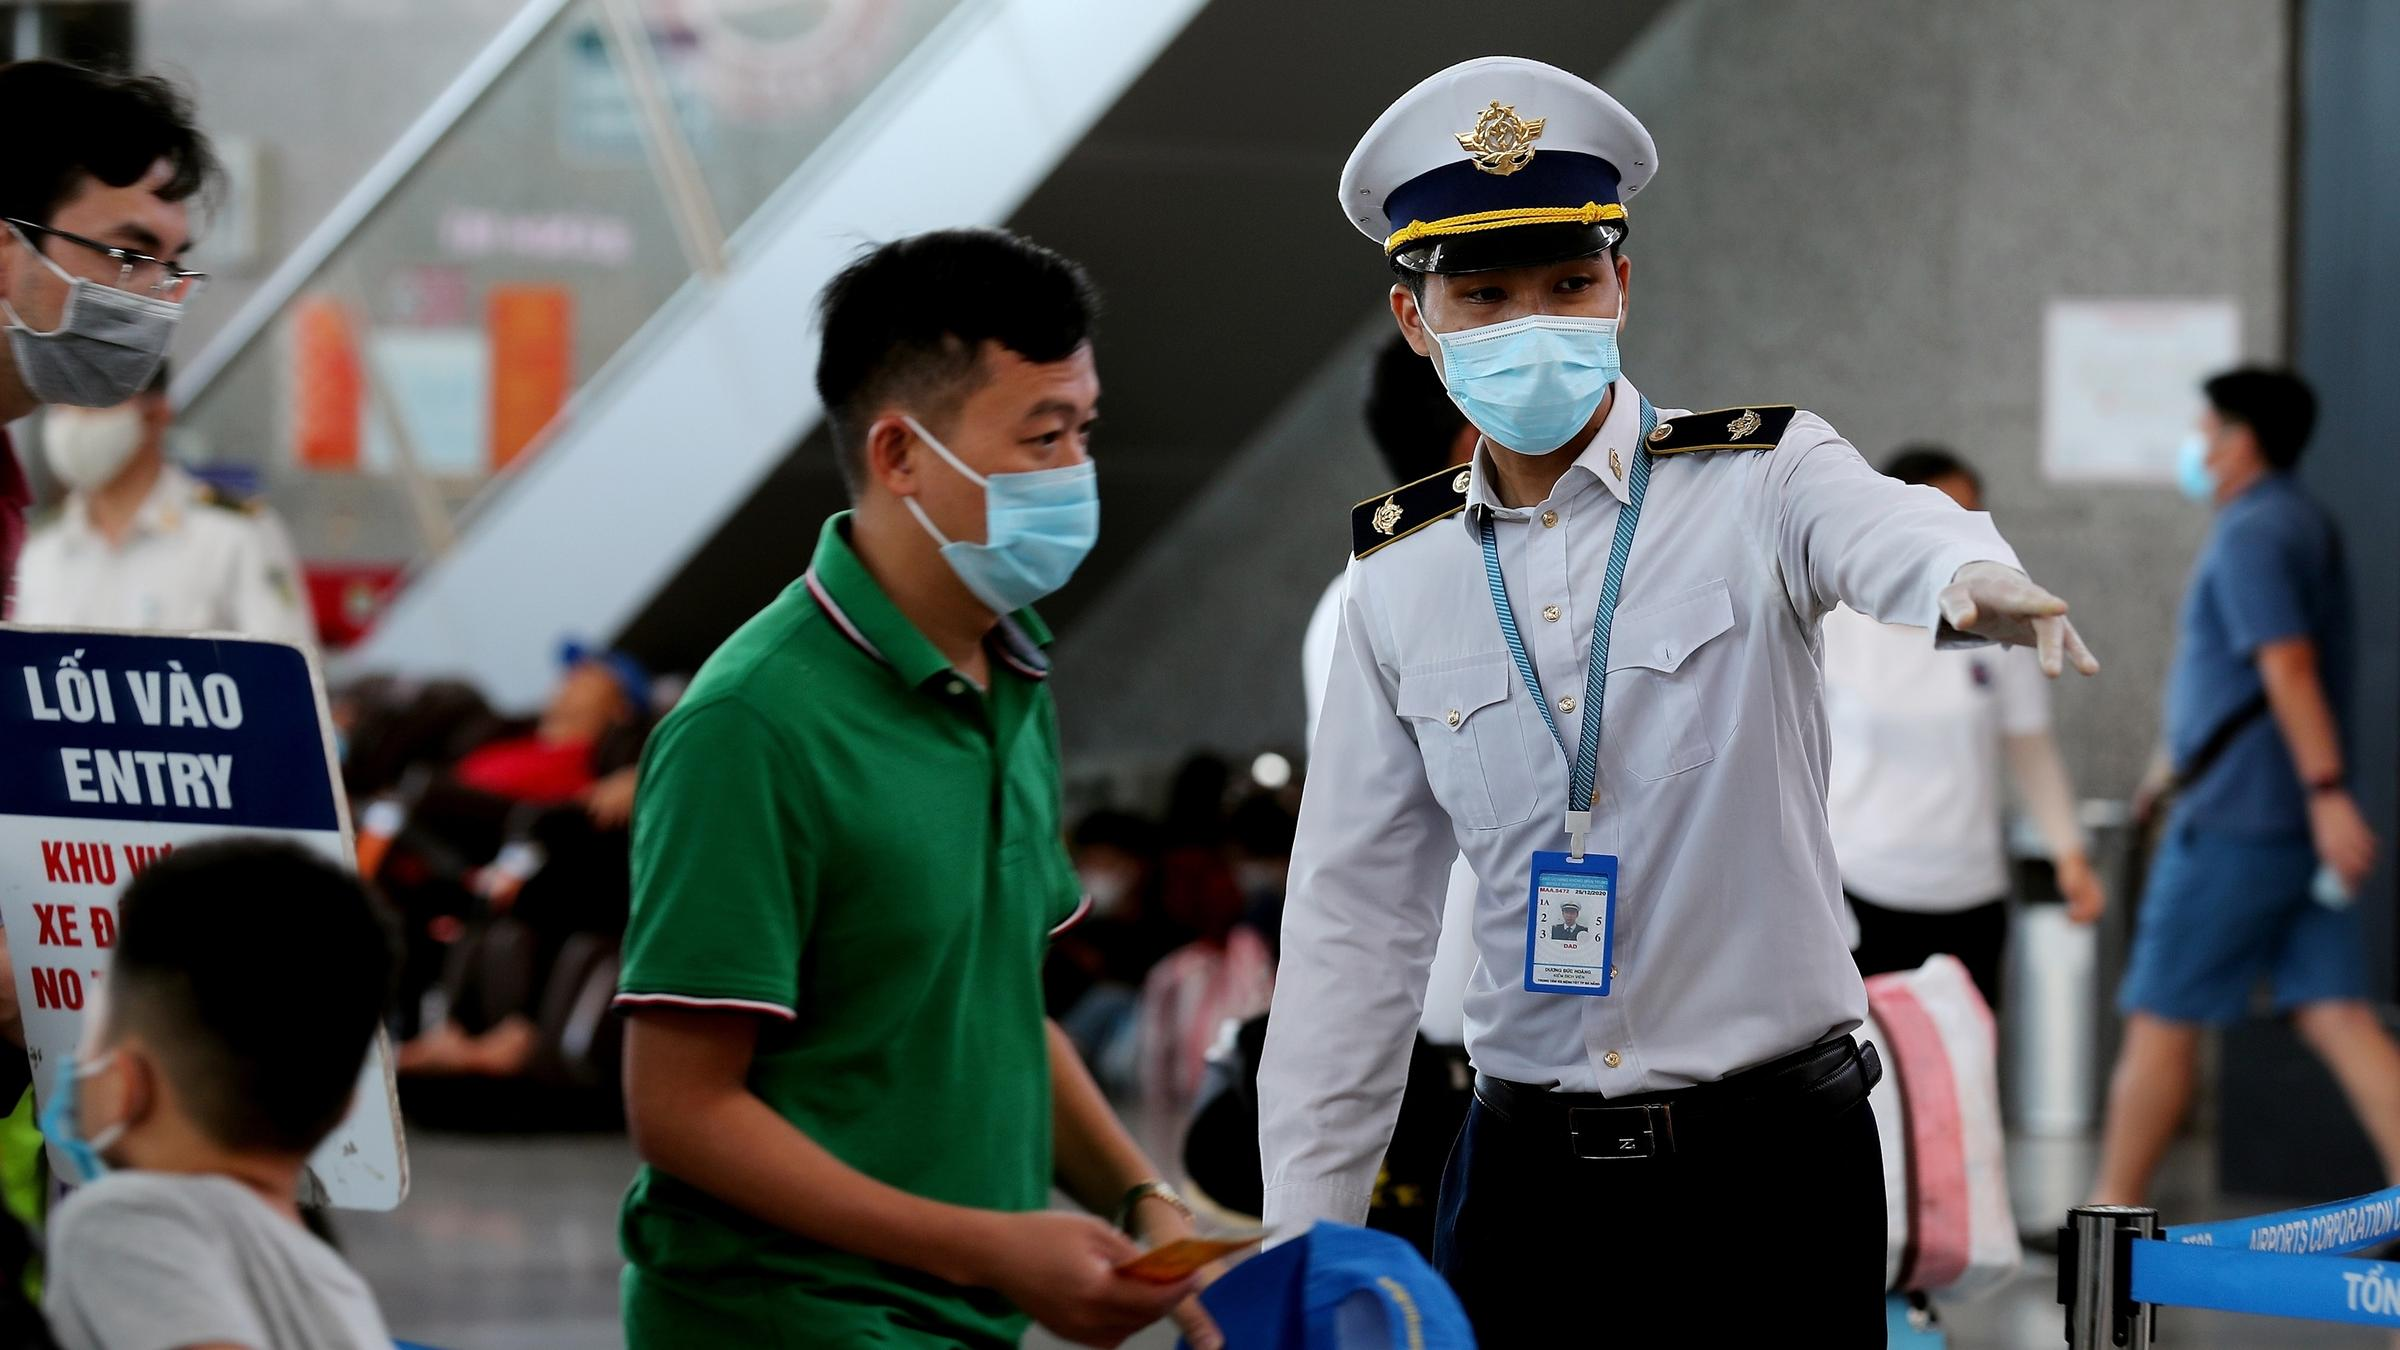 80,000 people leave Vietnamese city after new virus cases appear